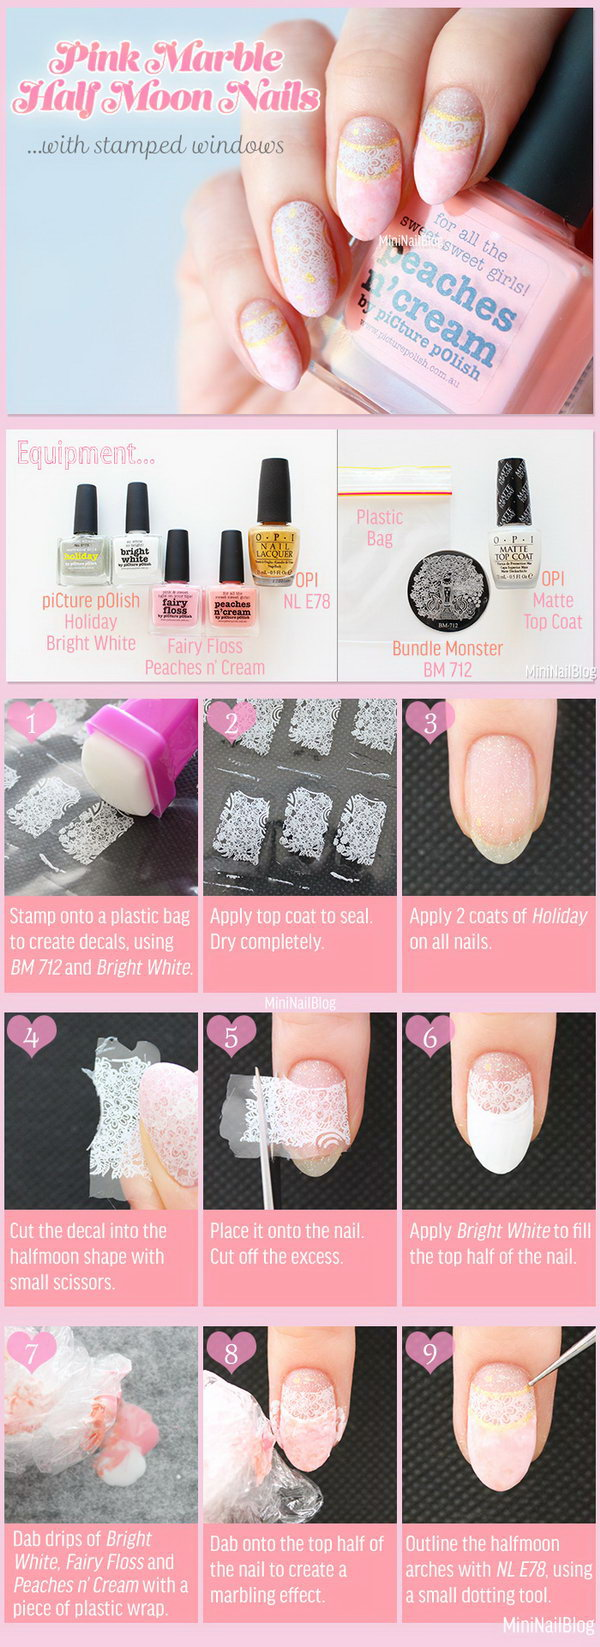 20 step by step nail art tutorials - 20+ Easy and Fun Step by Step Nail Art Tutorials